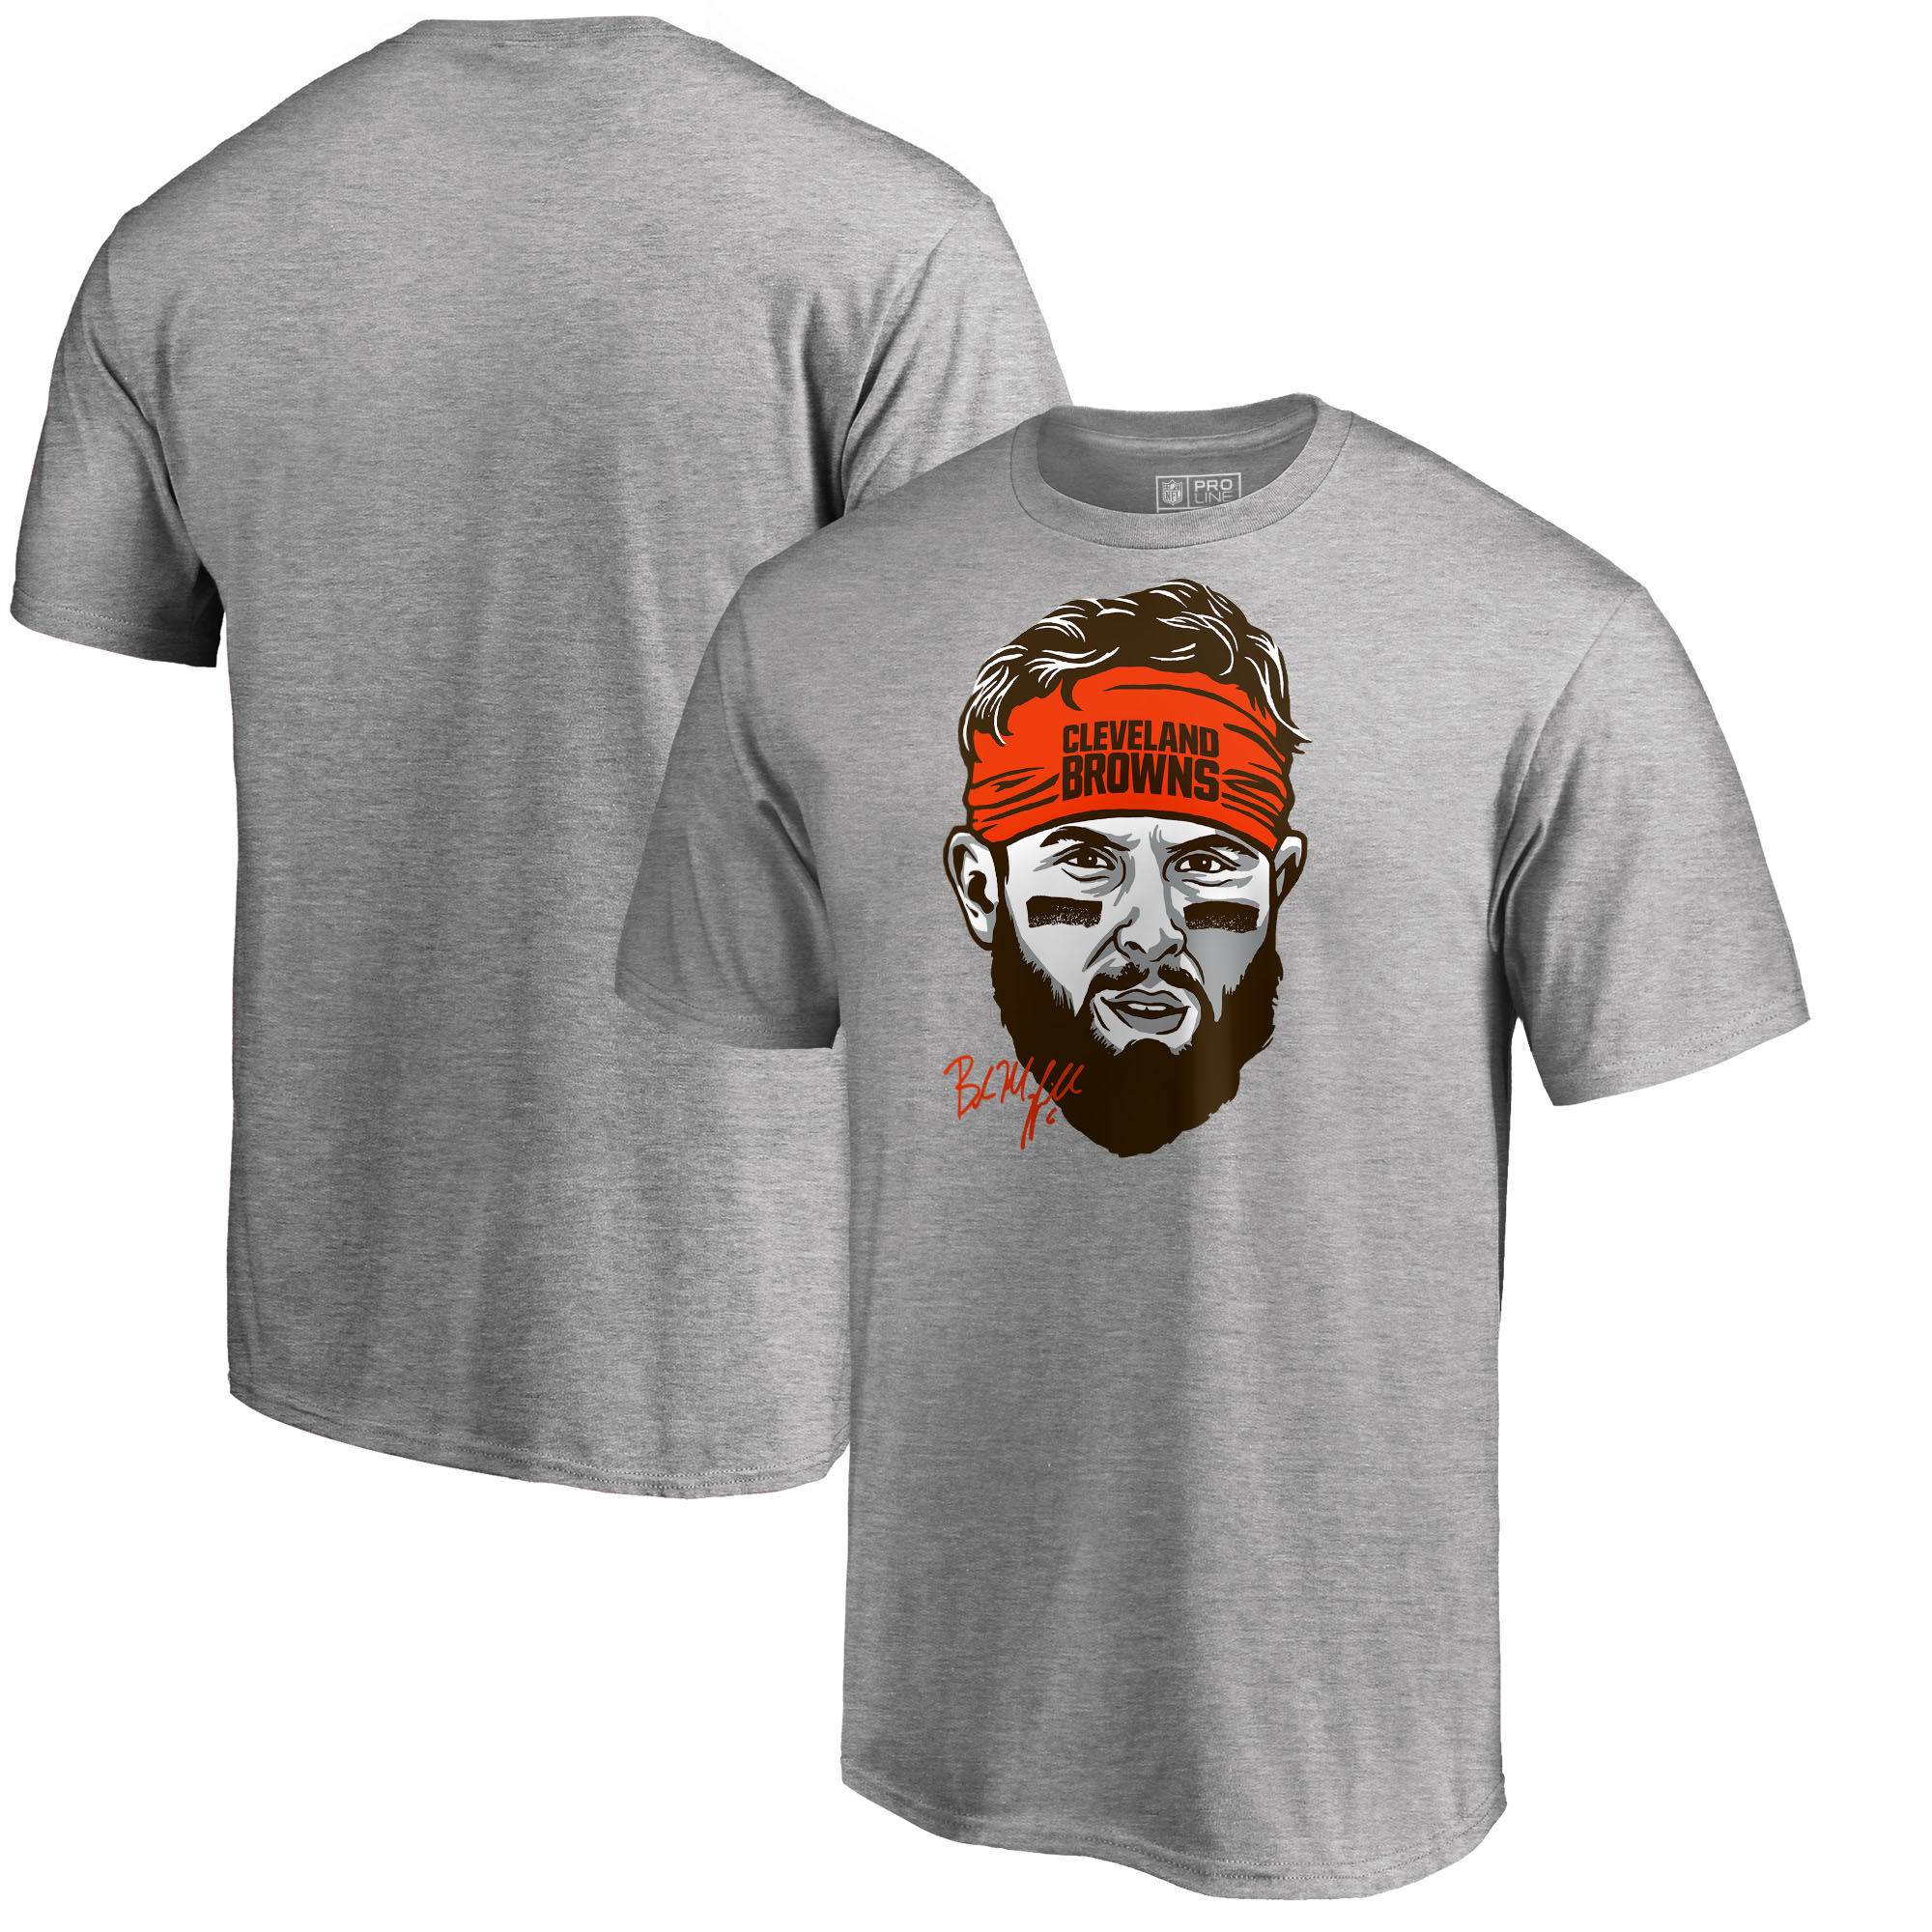 Baker Mayfield Cleveland Browns NFL Pro Line by Fanatics Branded Baker Mayfield Headband T-Shirt - Heather Gray